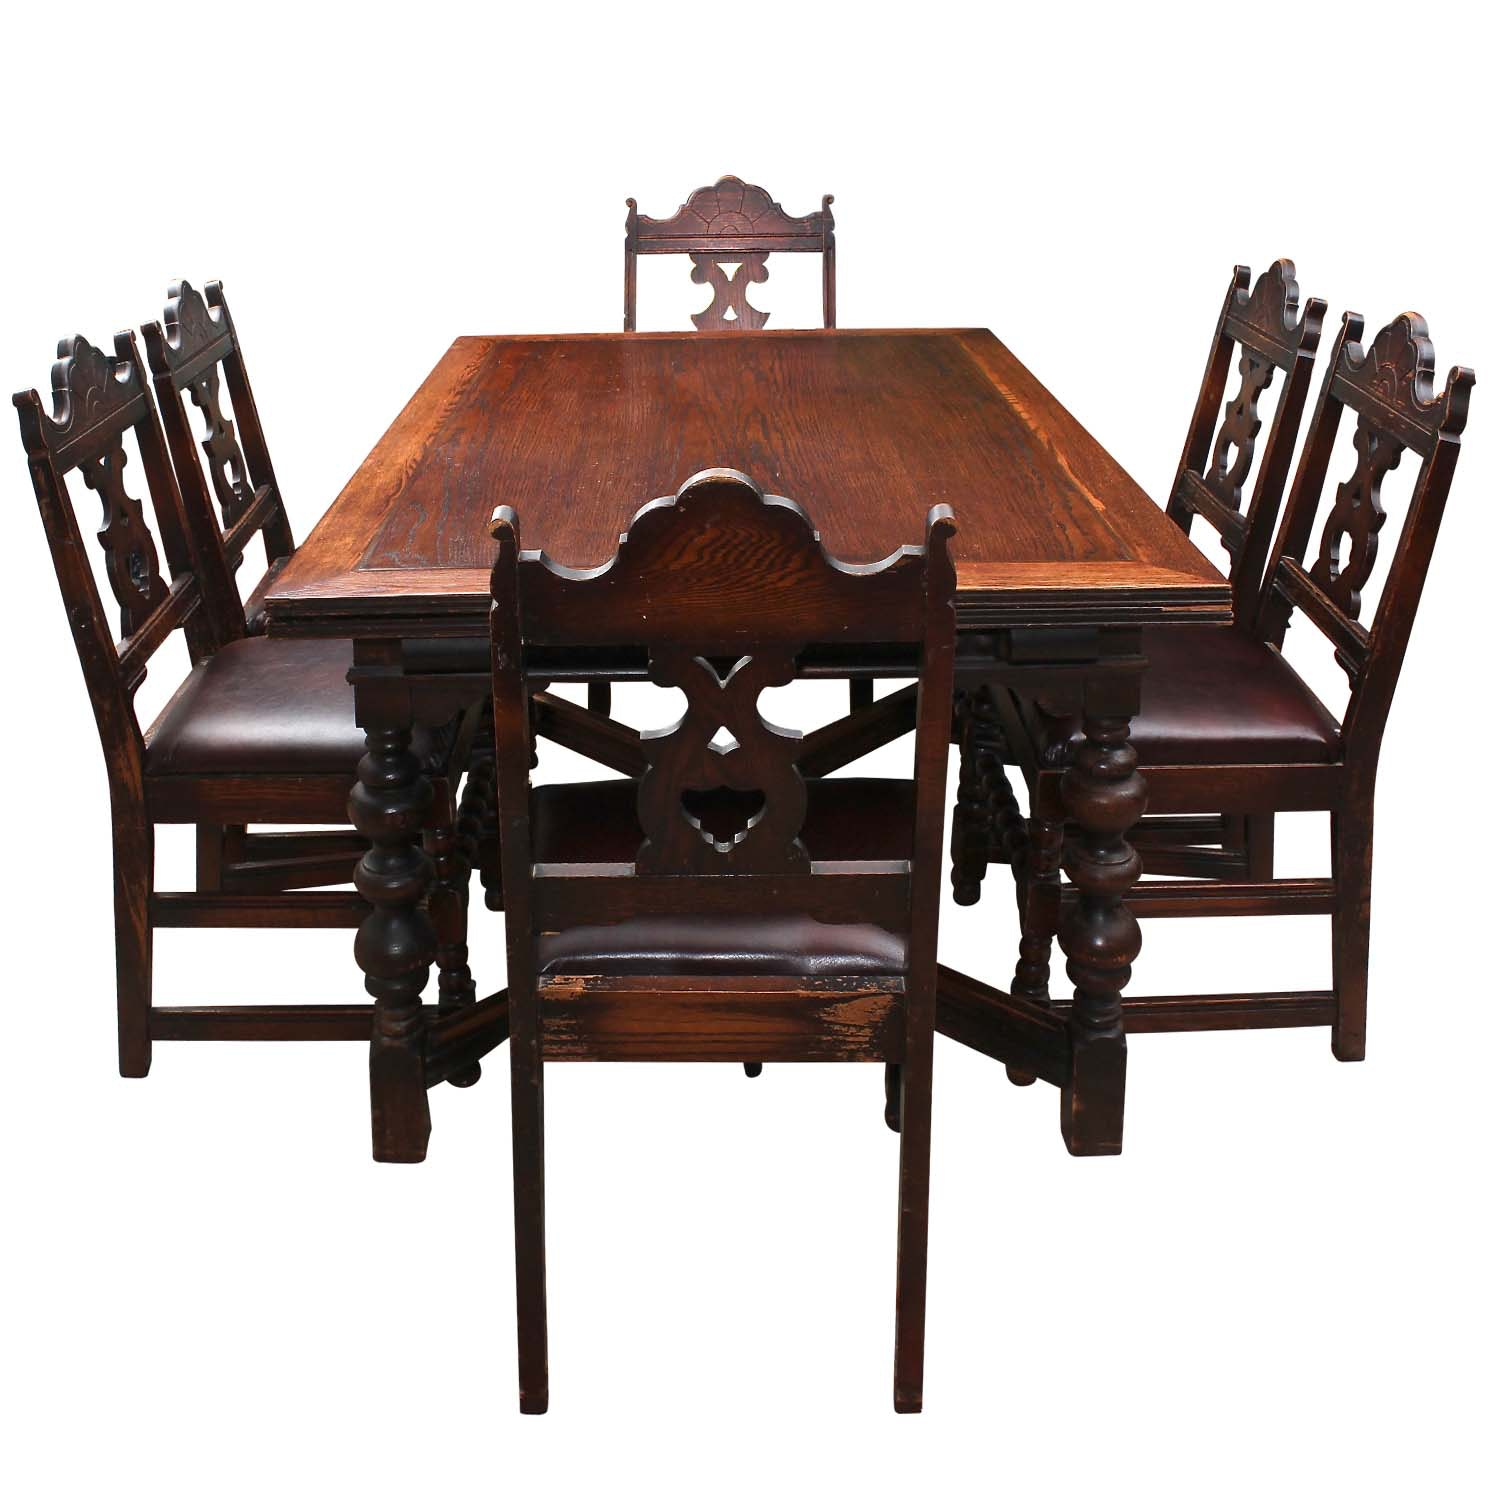 Vintage Mediterranean Style Mahogany Dining Table and Chairs